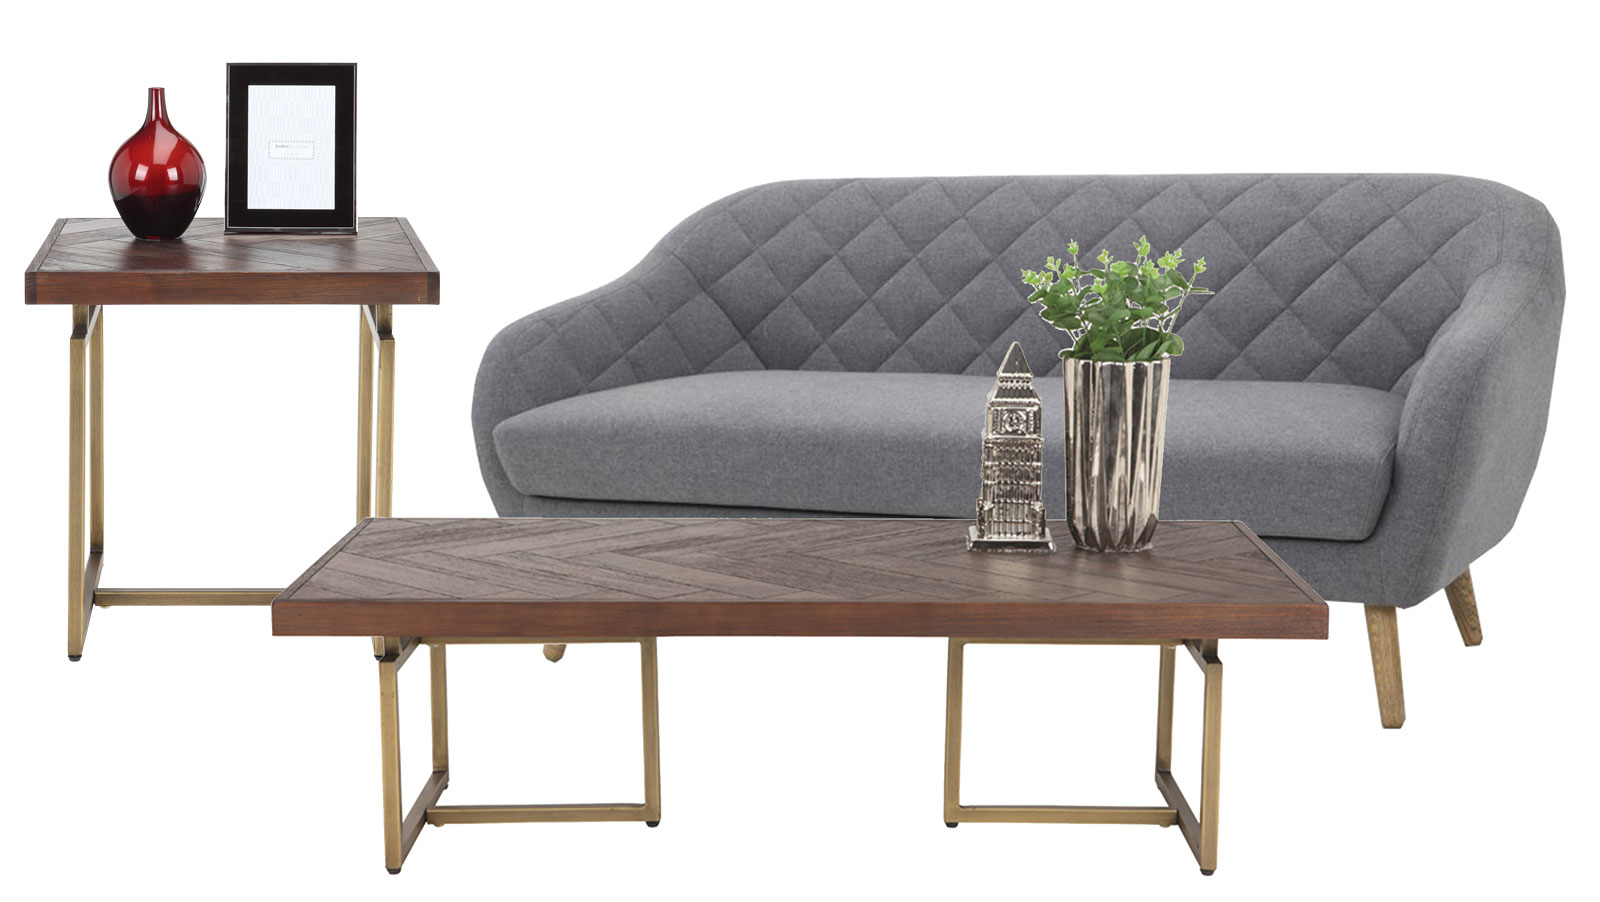 BLIMS Fine Furniture continues to set trends on its 40th year